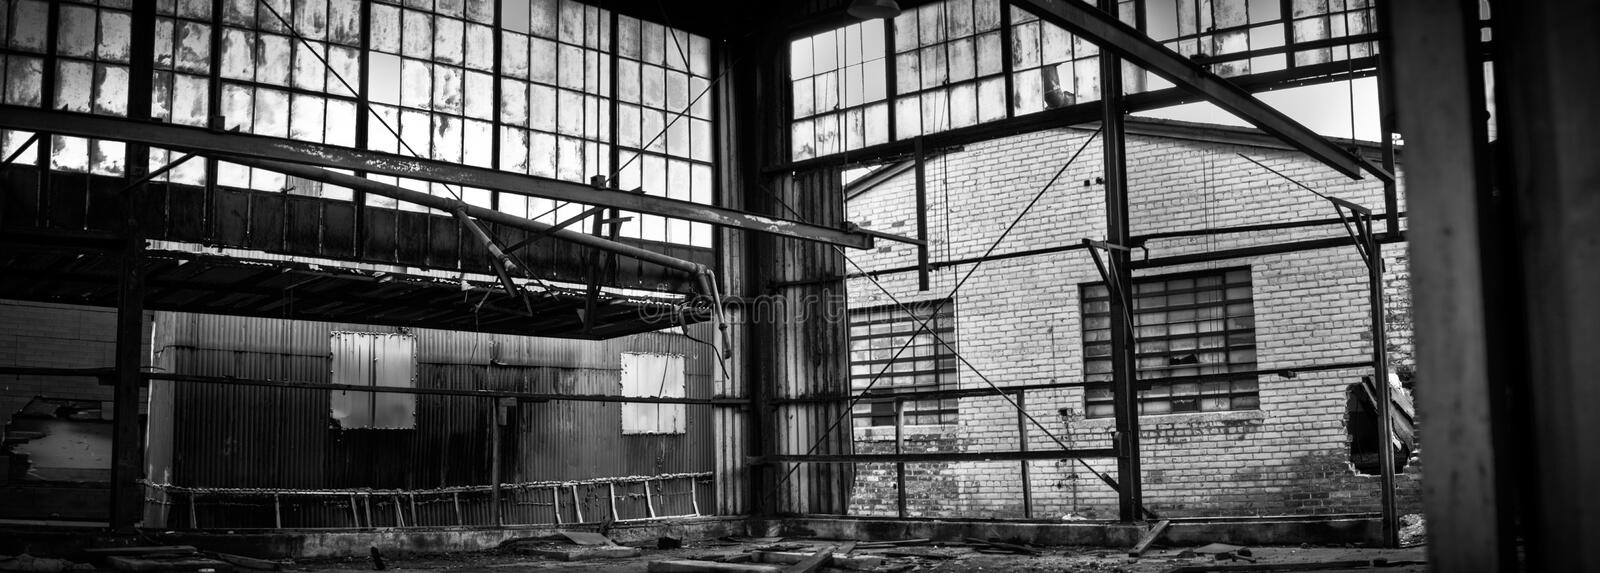 Download Abandoned Industrial Factory Warehouse Interior Stock Photo - Image: 15136134